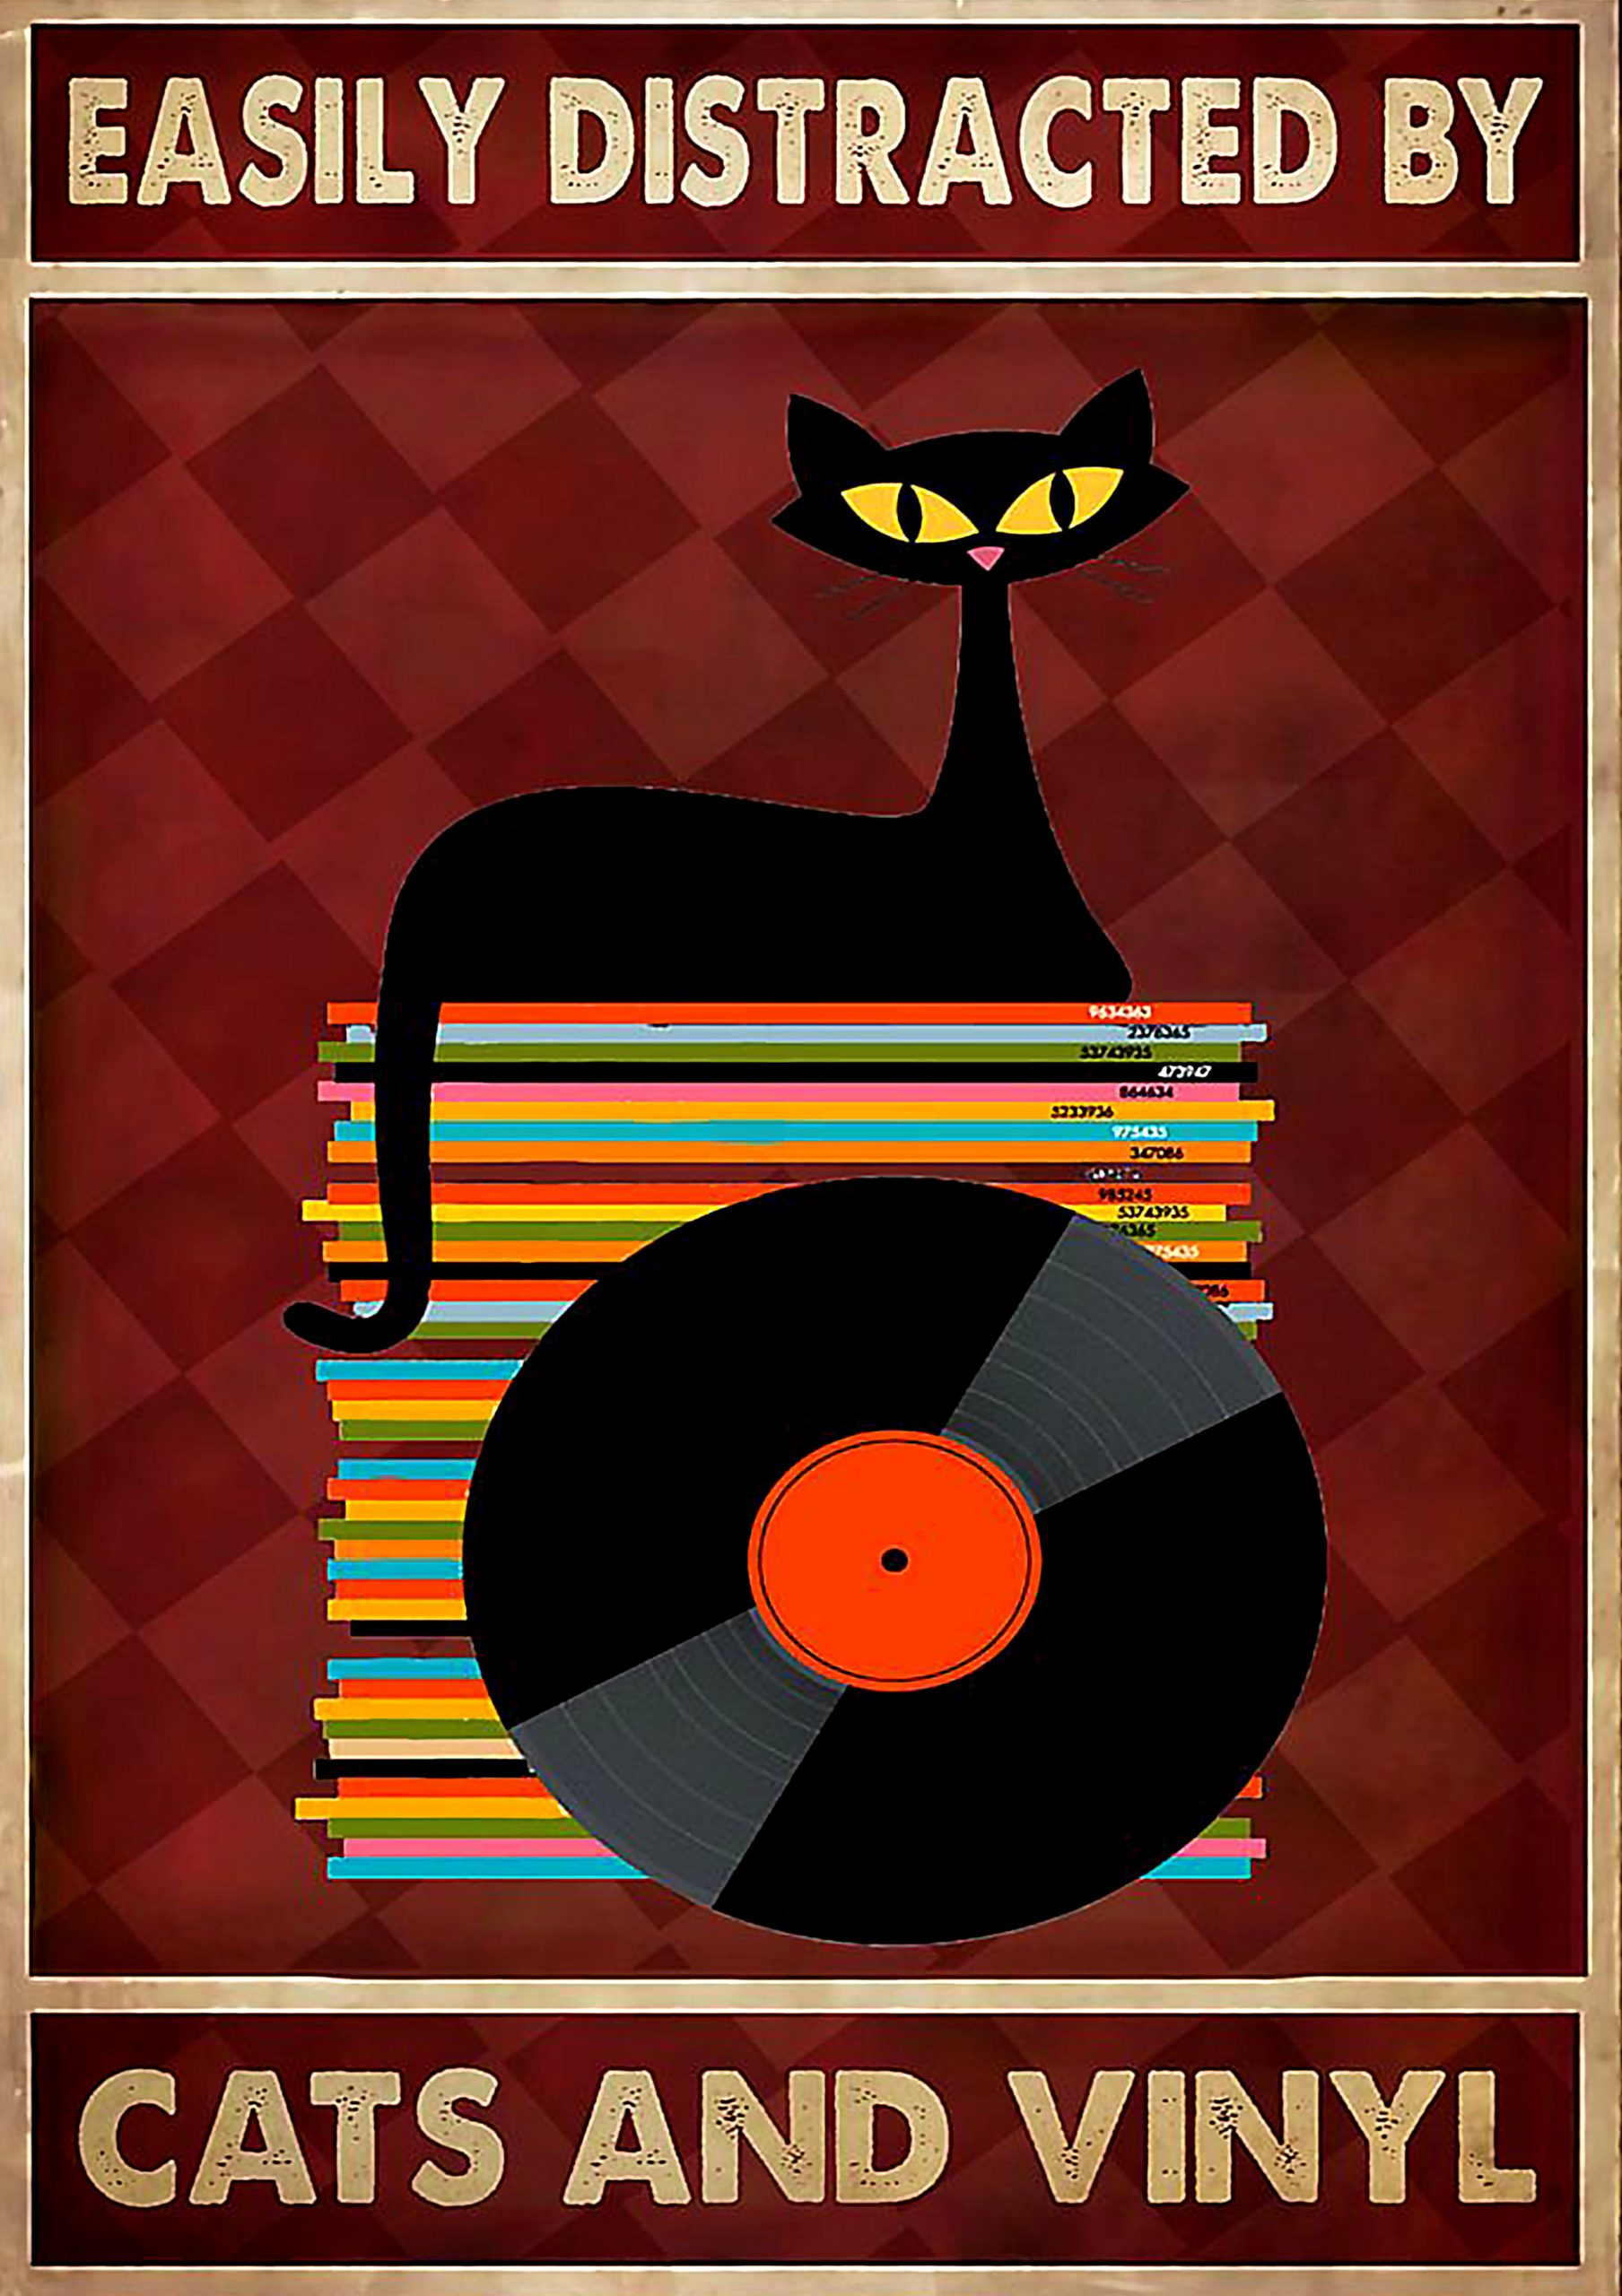 vintage easily distracted by cats and vinyl poster 1 - Copy (3)